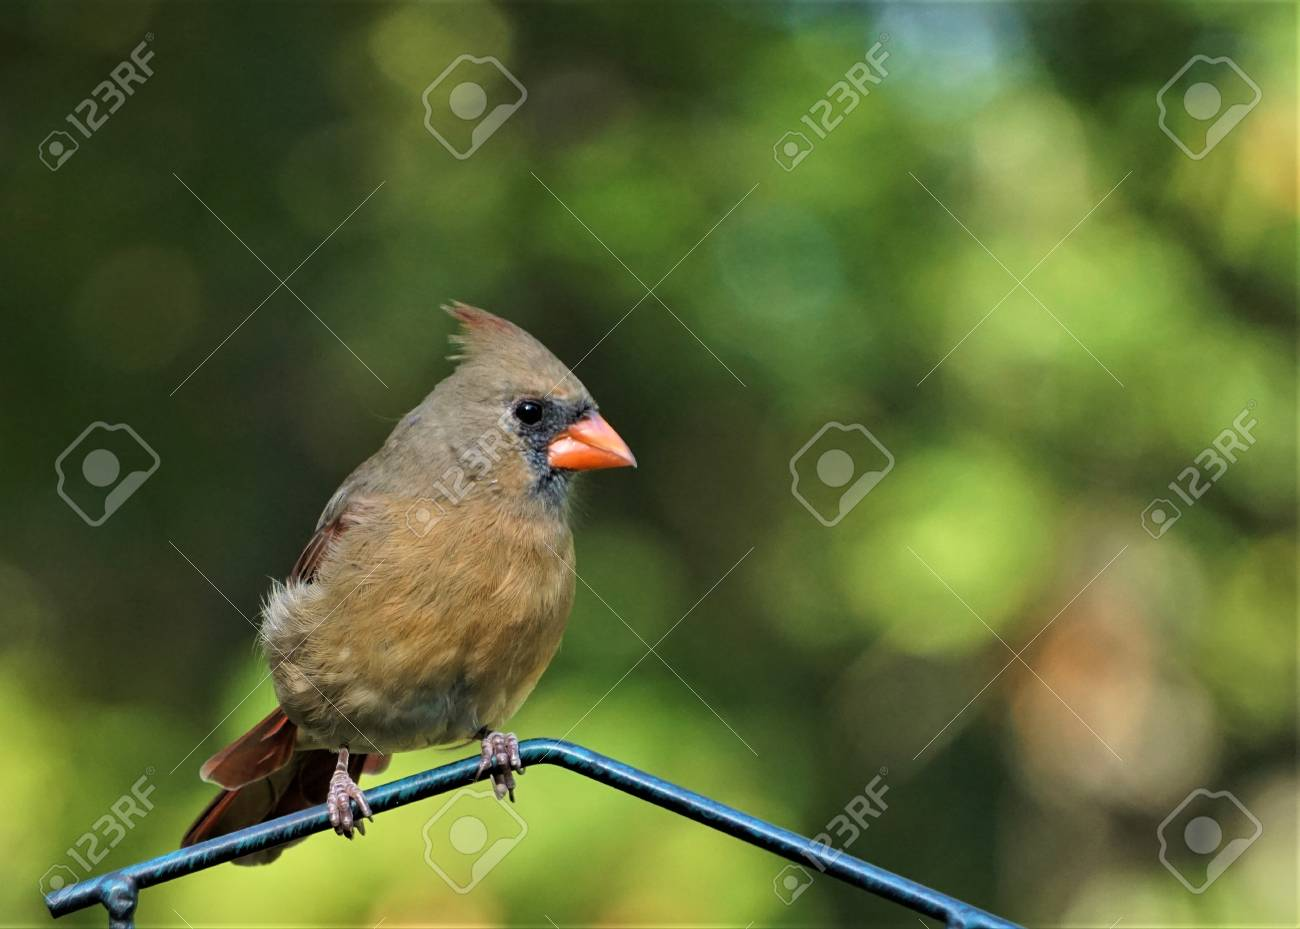 A Single Female Cardinal Bird Is Perching On The Bird Feeder Stand In The  Morning On